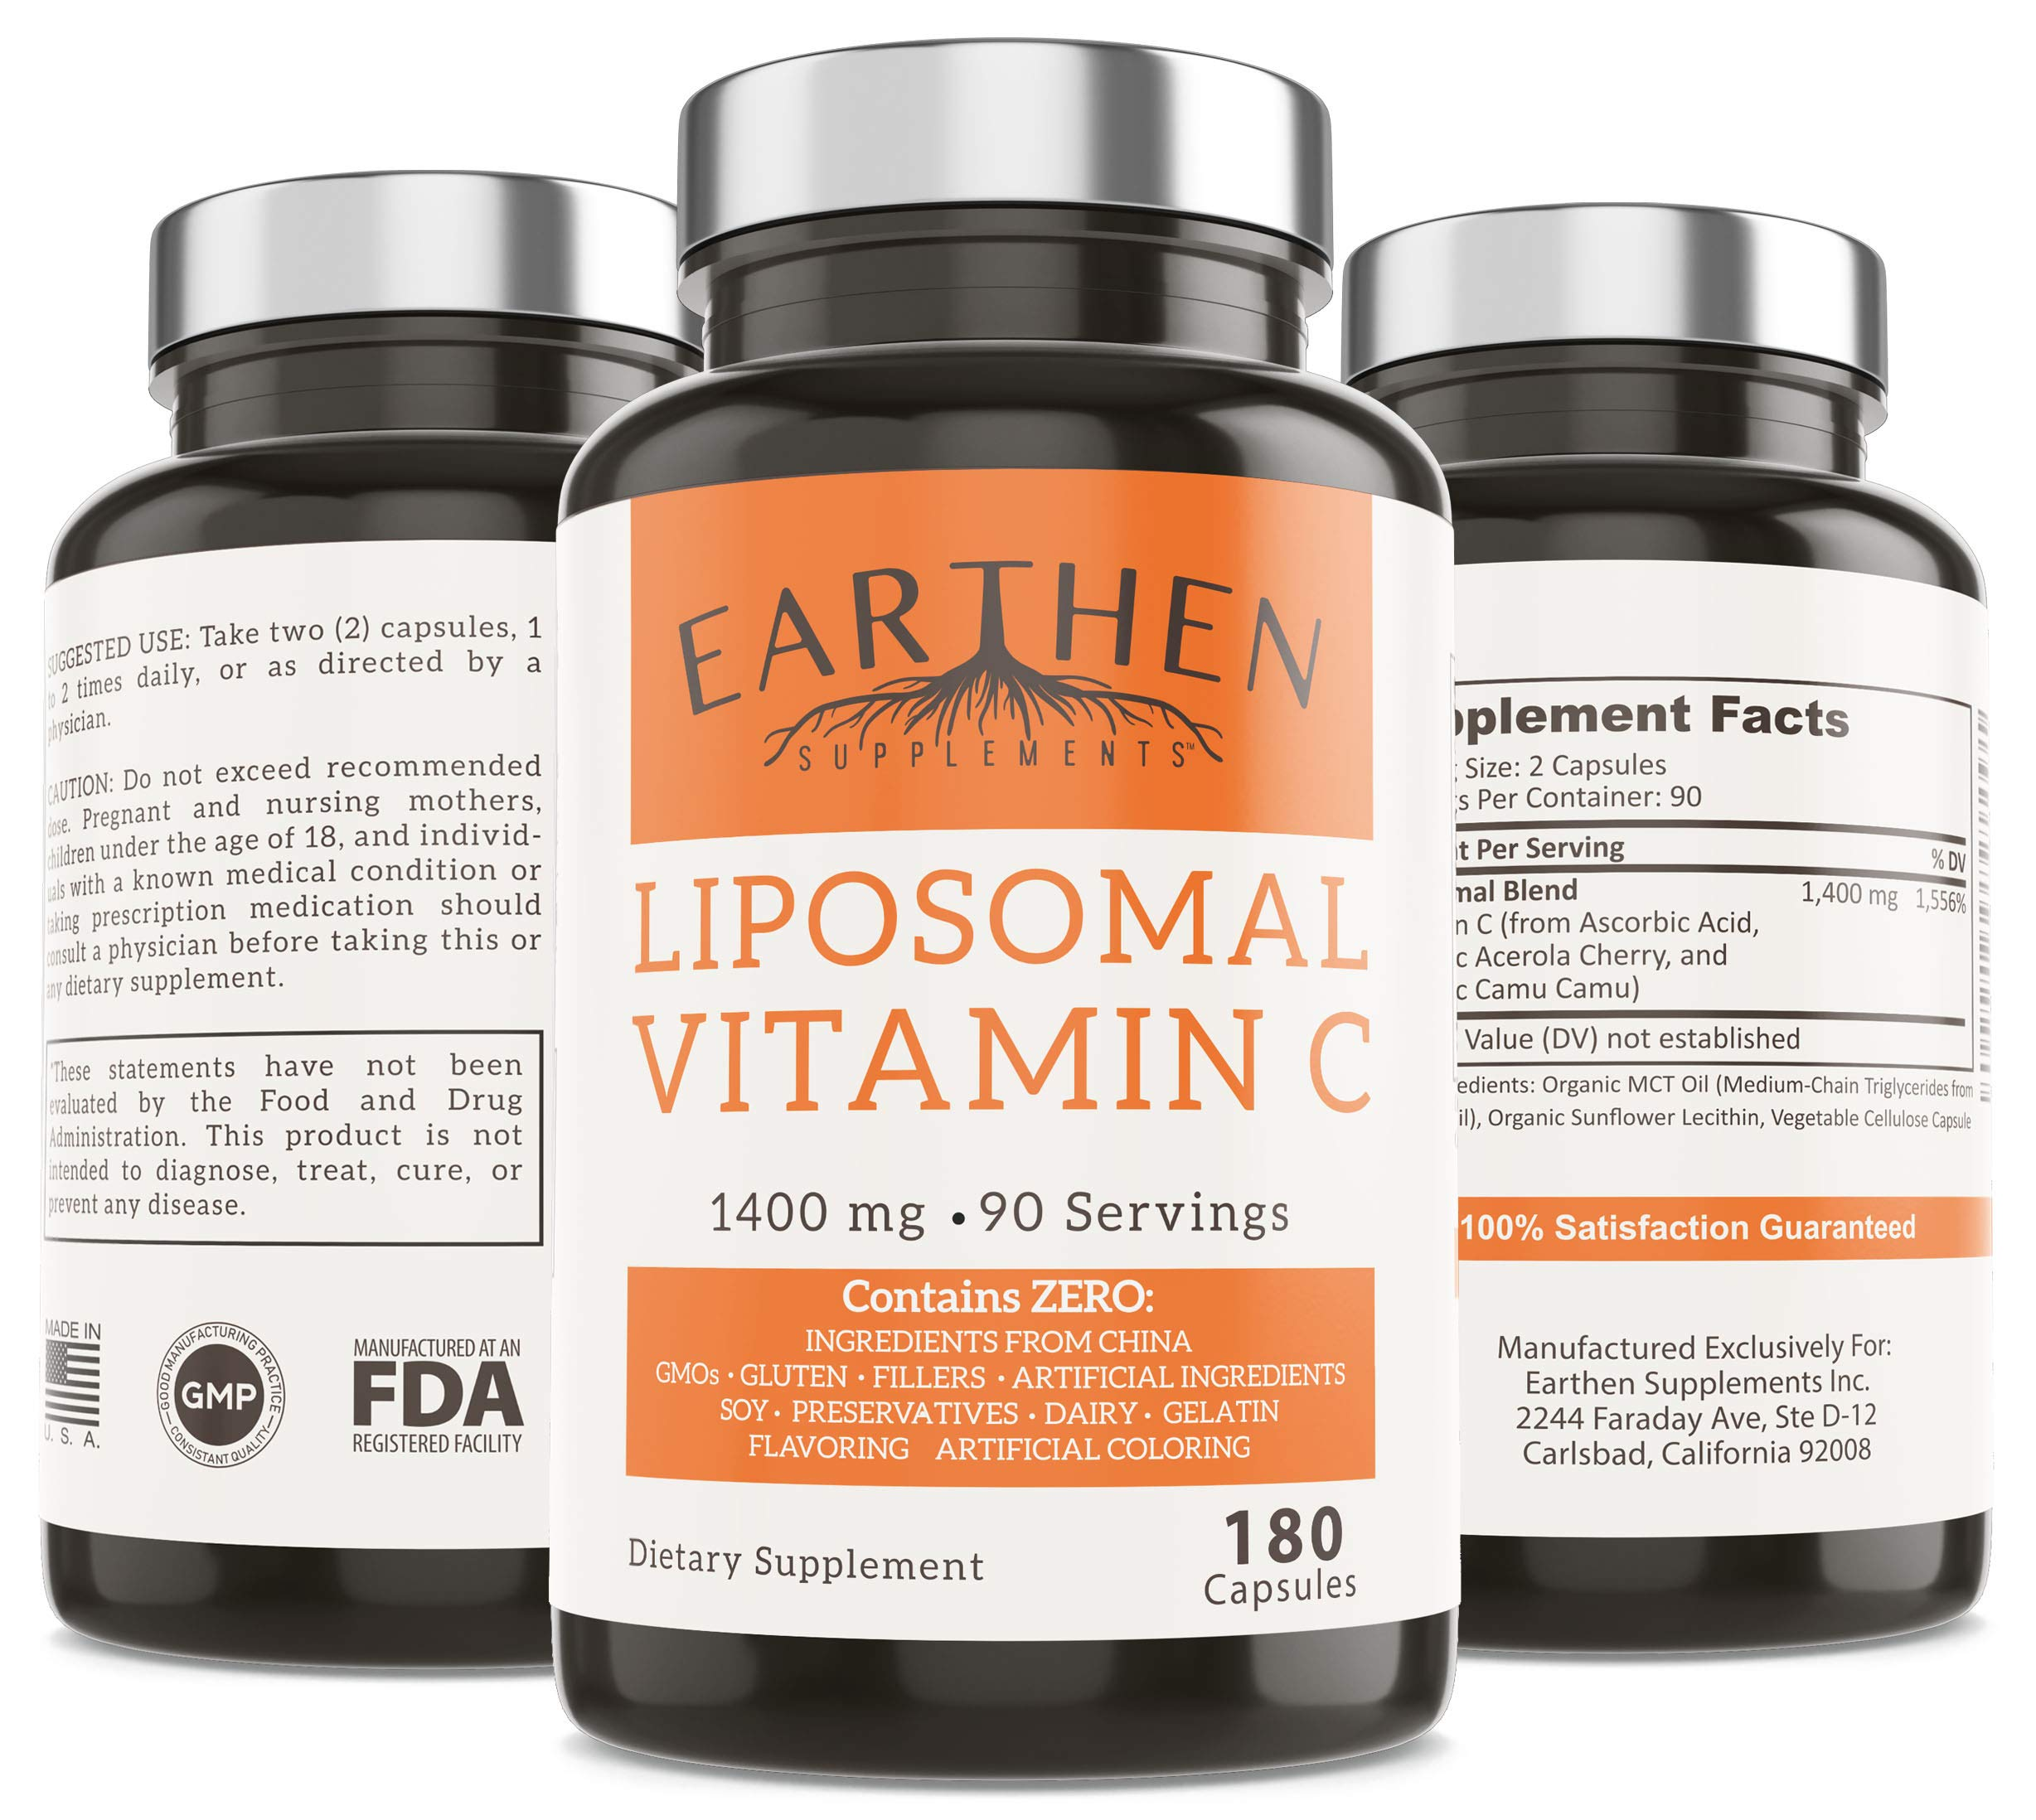 Liposomal Vitamin C 1400MG Per Serving 180 Capsule 90 Serving | China Free Non GMO Fat Soluble High Absorption Antioxidant Immune System Support by EARTHEN supplements